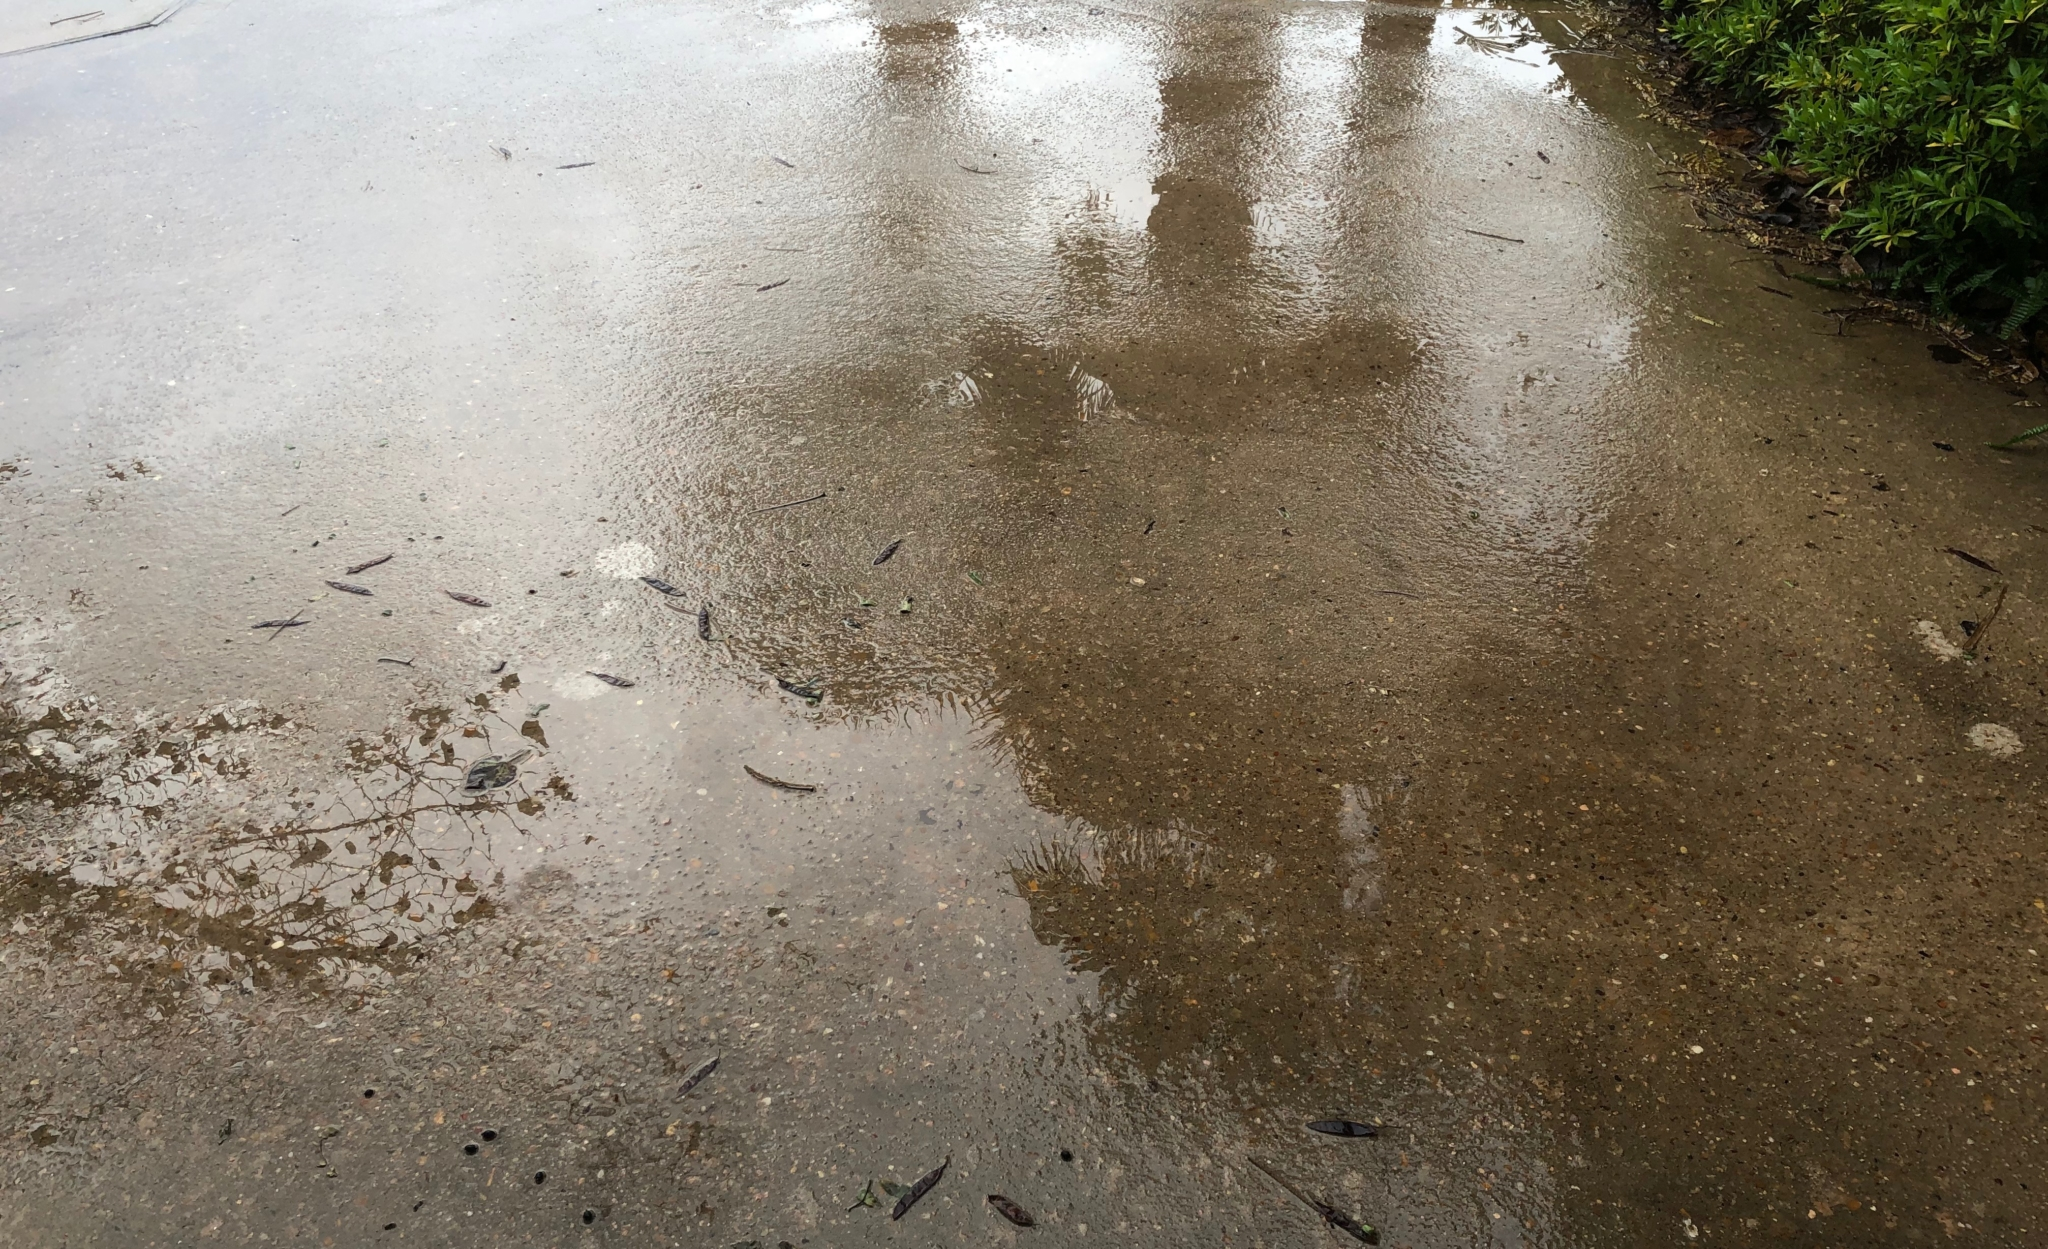 rain on wet concrete reflecting the storms of life